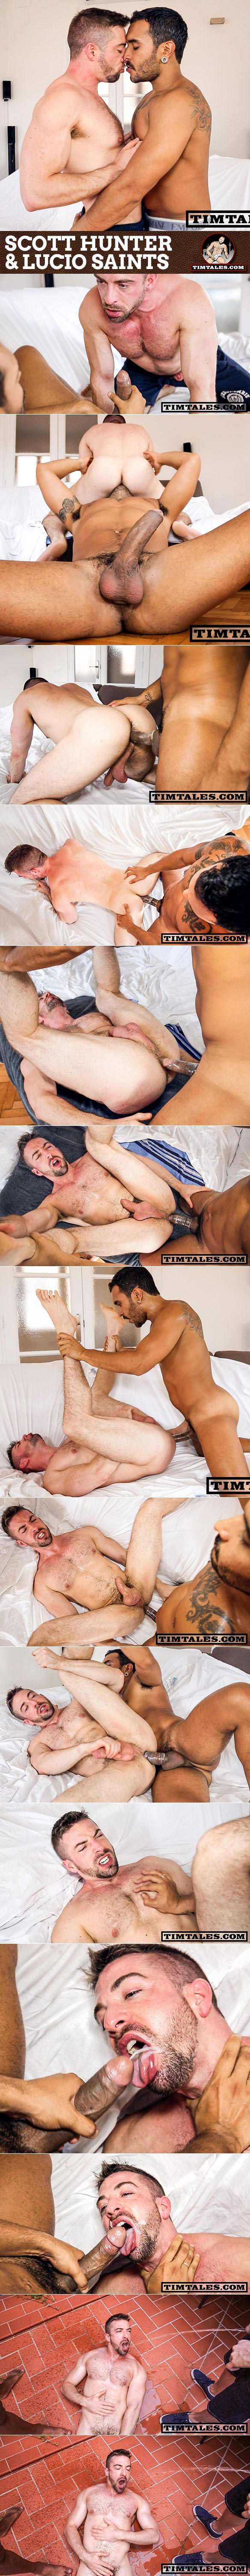 TimTales: Lucio Saints bangs Scott Hunter